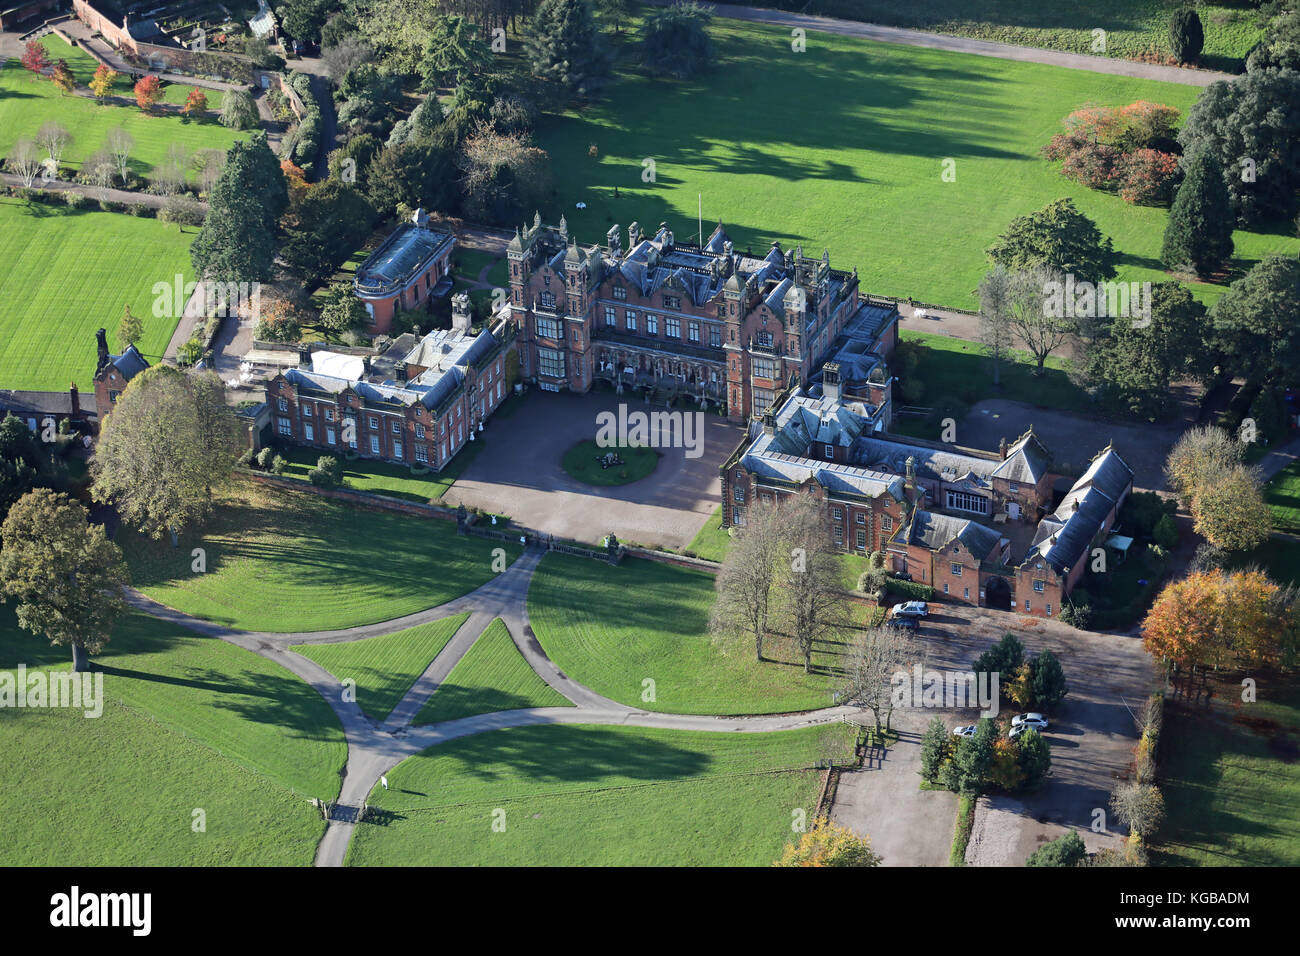 aerial view of Capesthorne Hall country house wedding venue near Macclesfield, Cheshire, UK - Stock Image